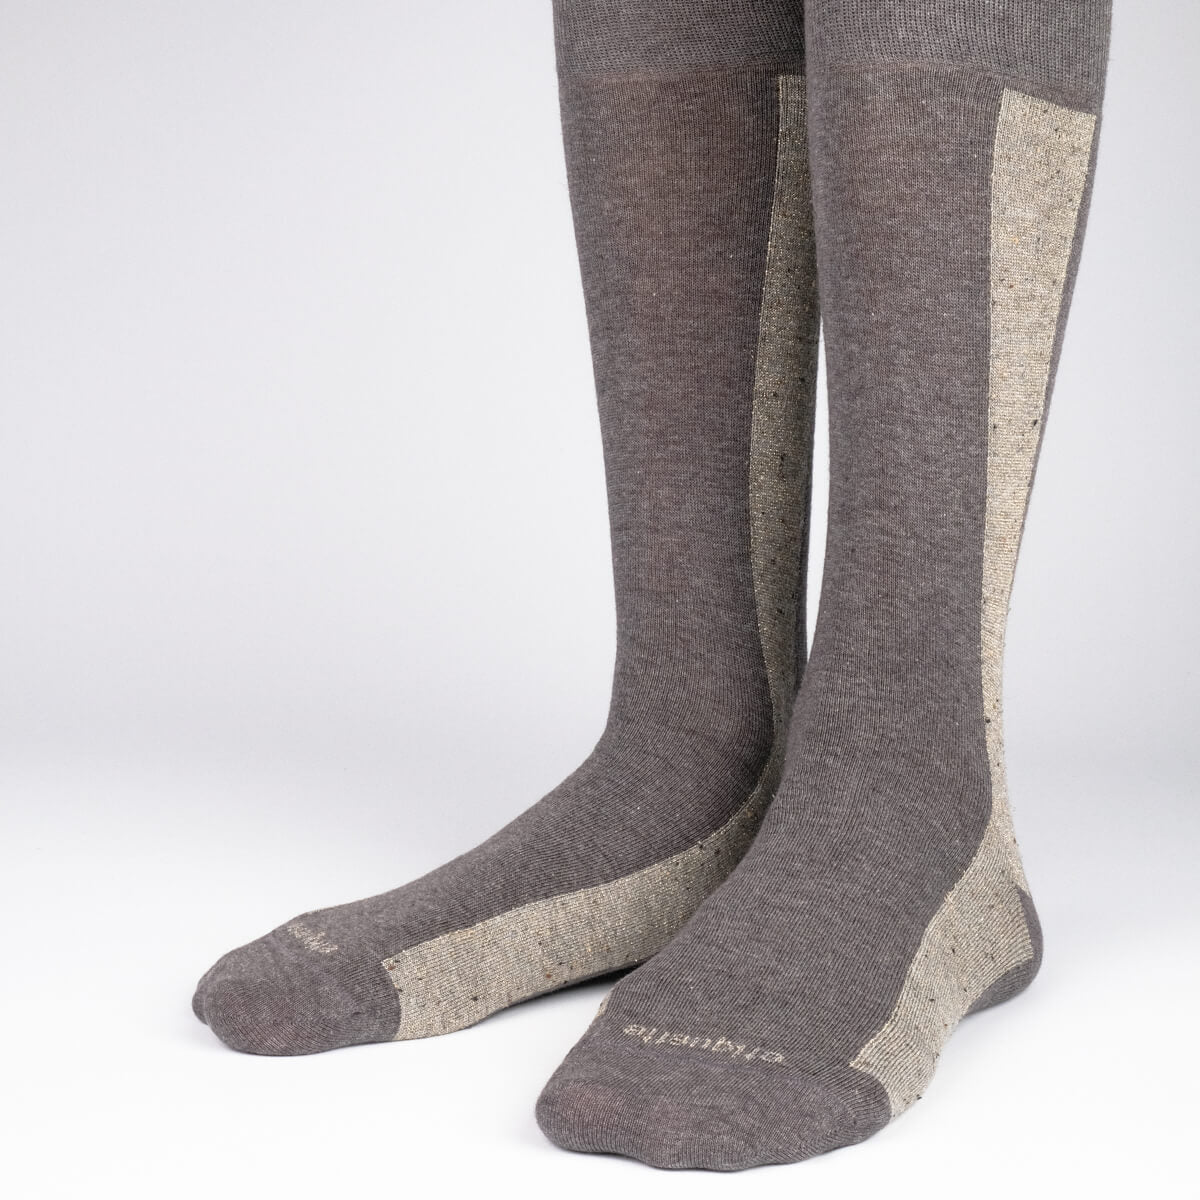 Mens Socks - Beat It Metallic Side Stripe - Dark Grey⎪Etiquette Clothiers